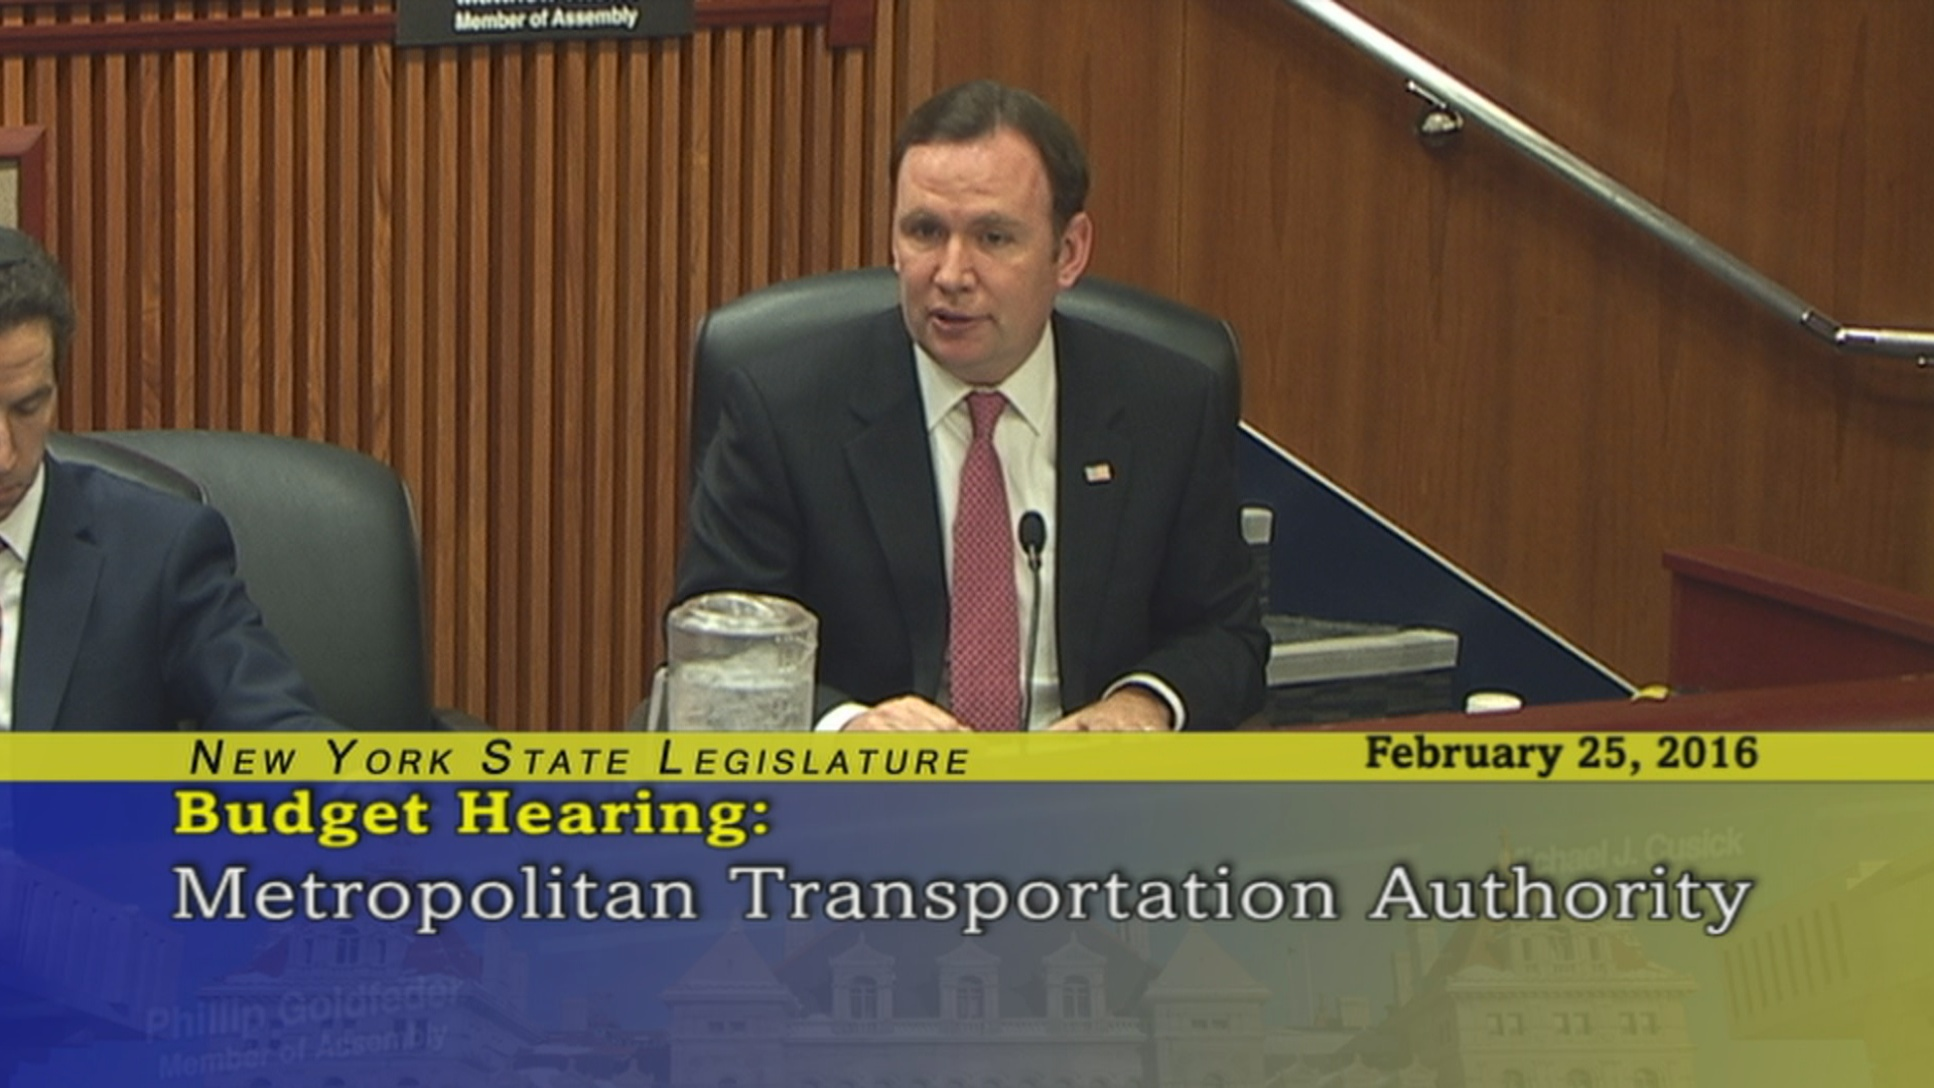 Joint Budget Hearing on the Metropolitan Transportation Authority